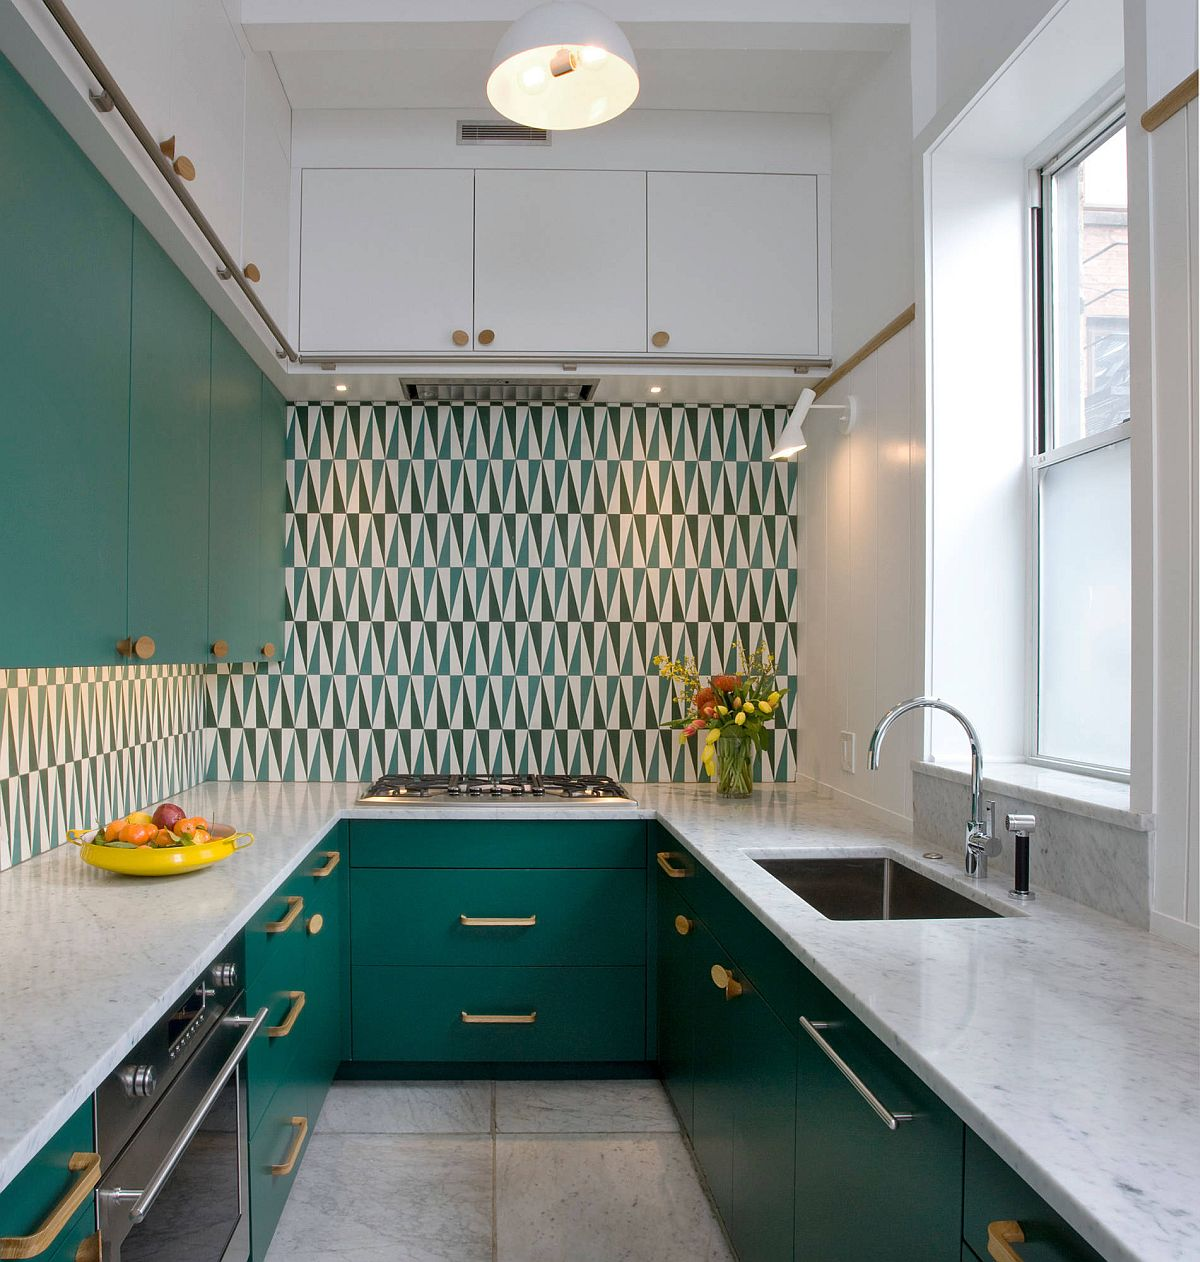 Using dark green cabinets in the small modern kitchen along with a snazzy backsplash